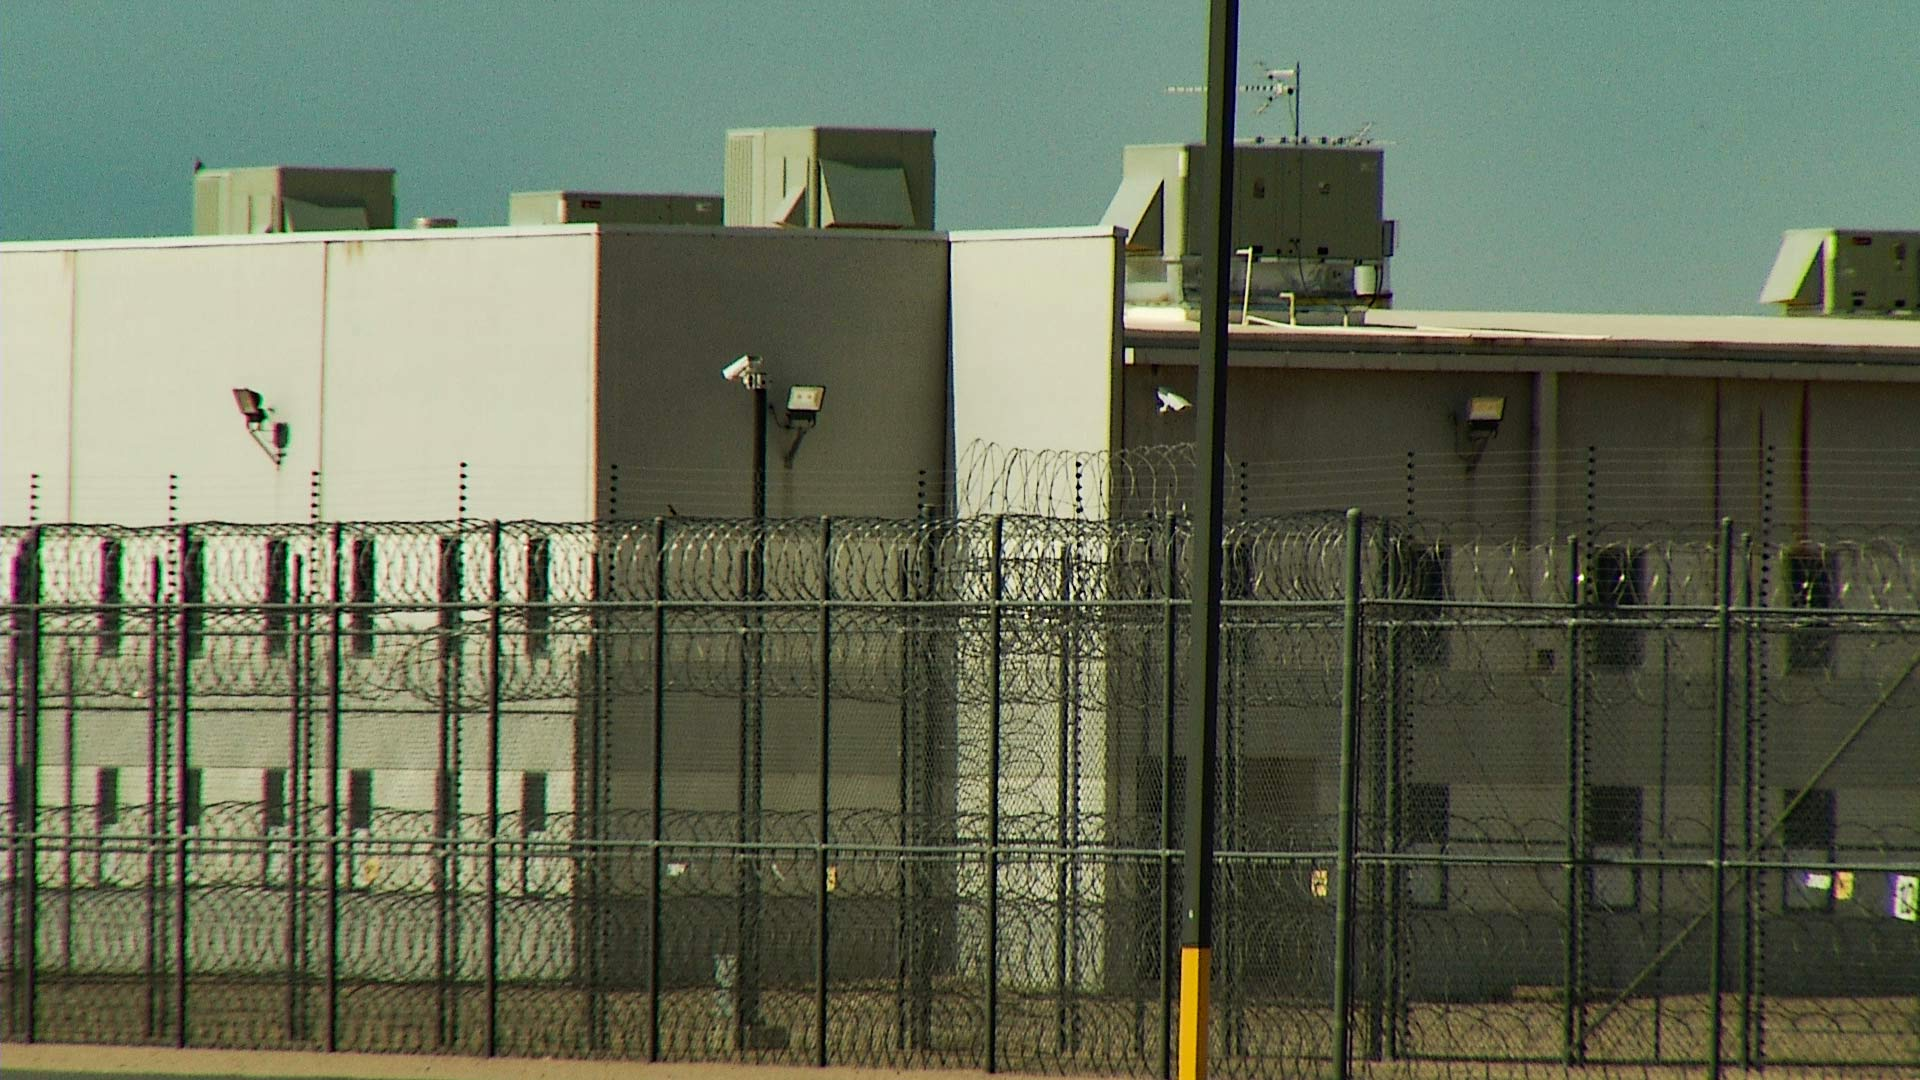 [Image description: The outside of a sand-colored, windowless building surrounded by high fences and barbed wire.]